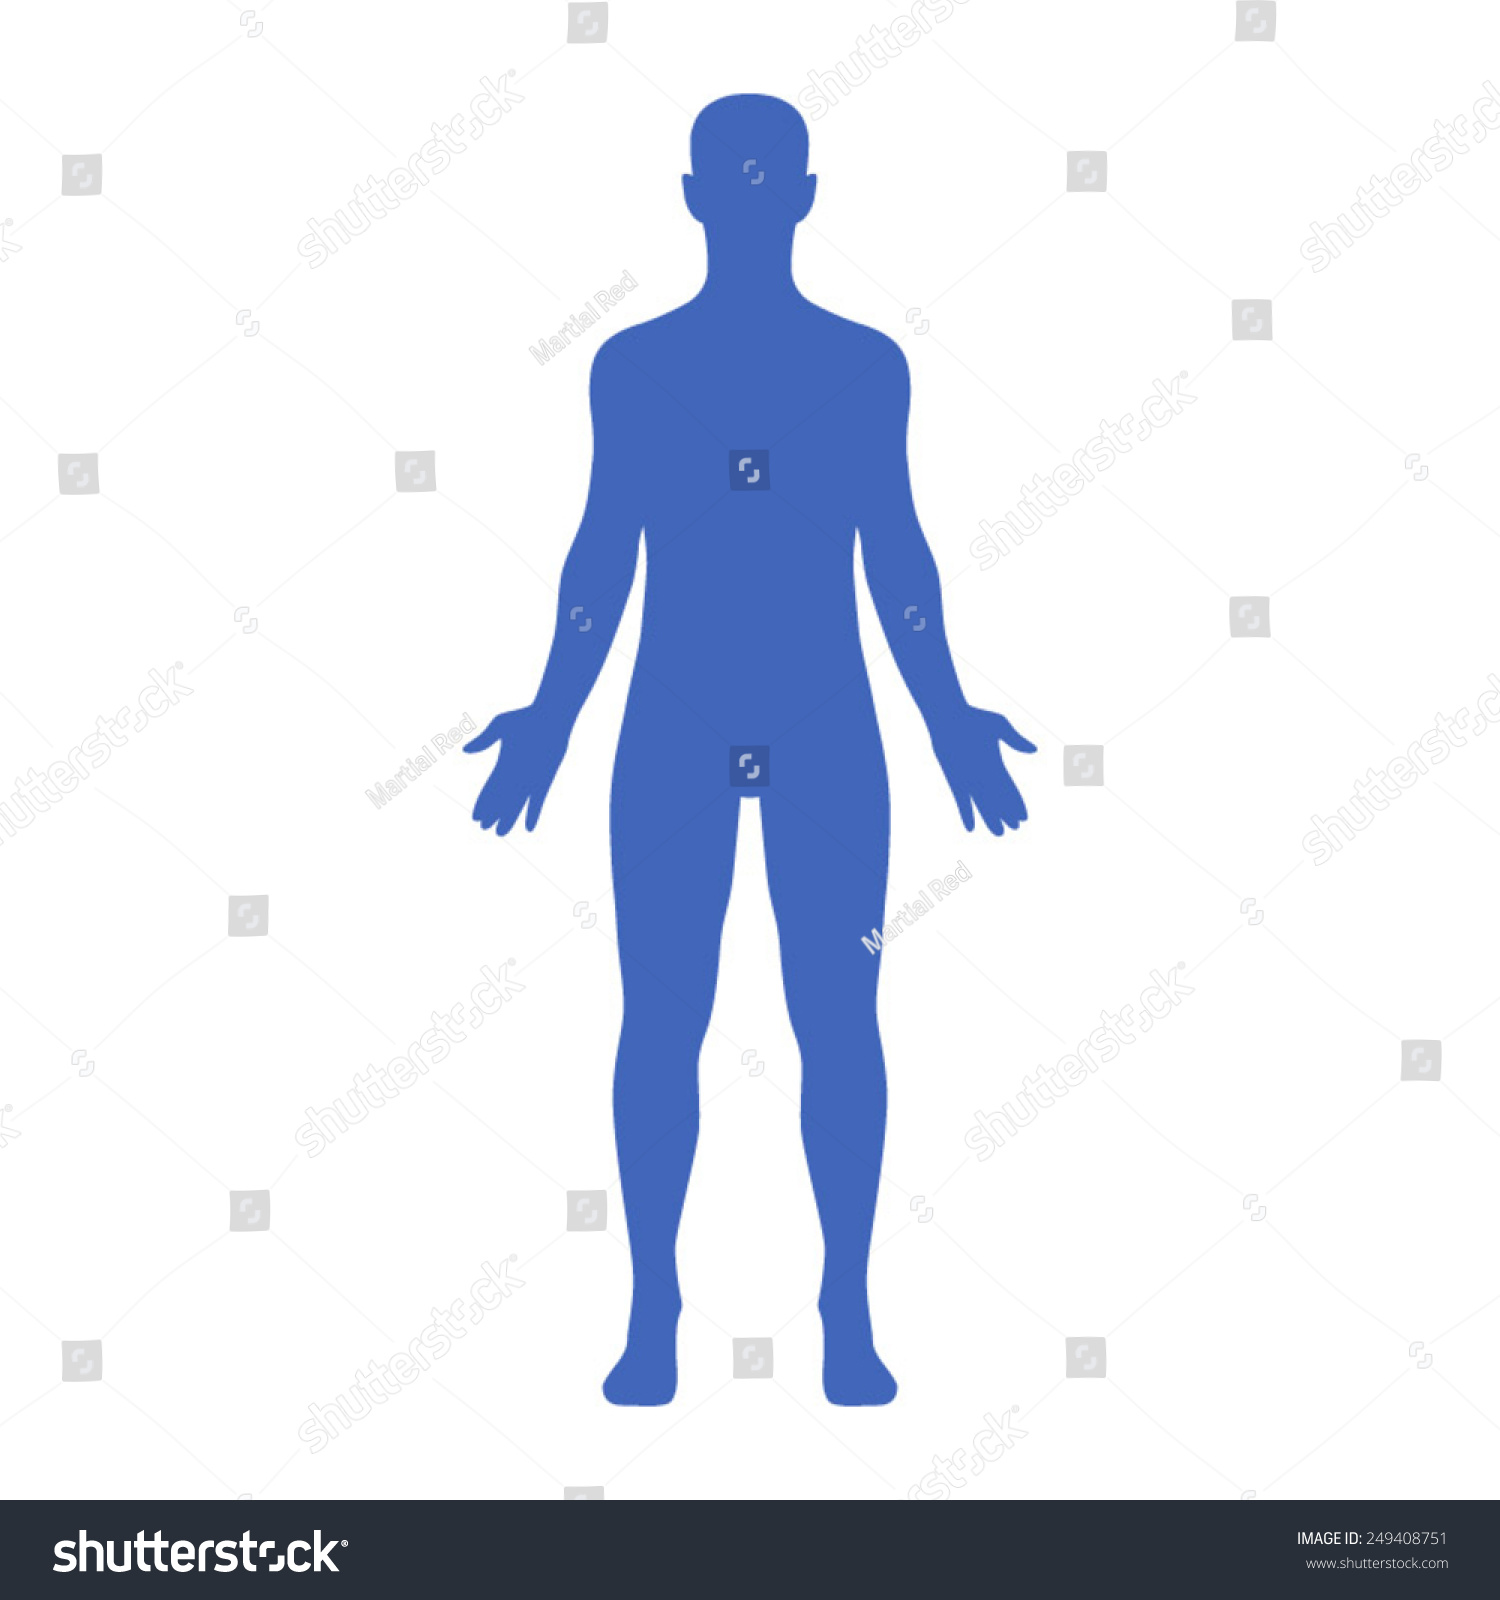 Male Human Body Belonging Adult Man Stock Vector Royalty Free